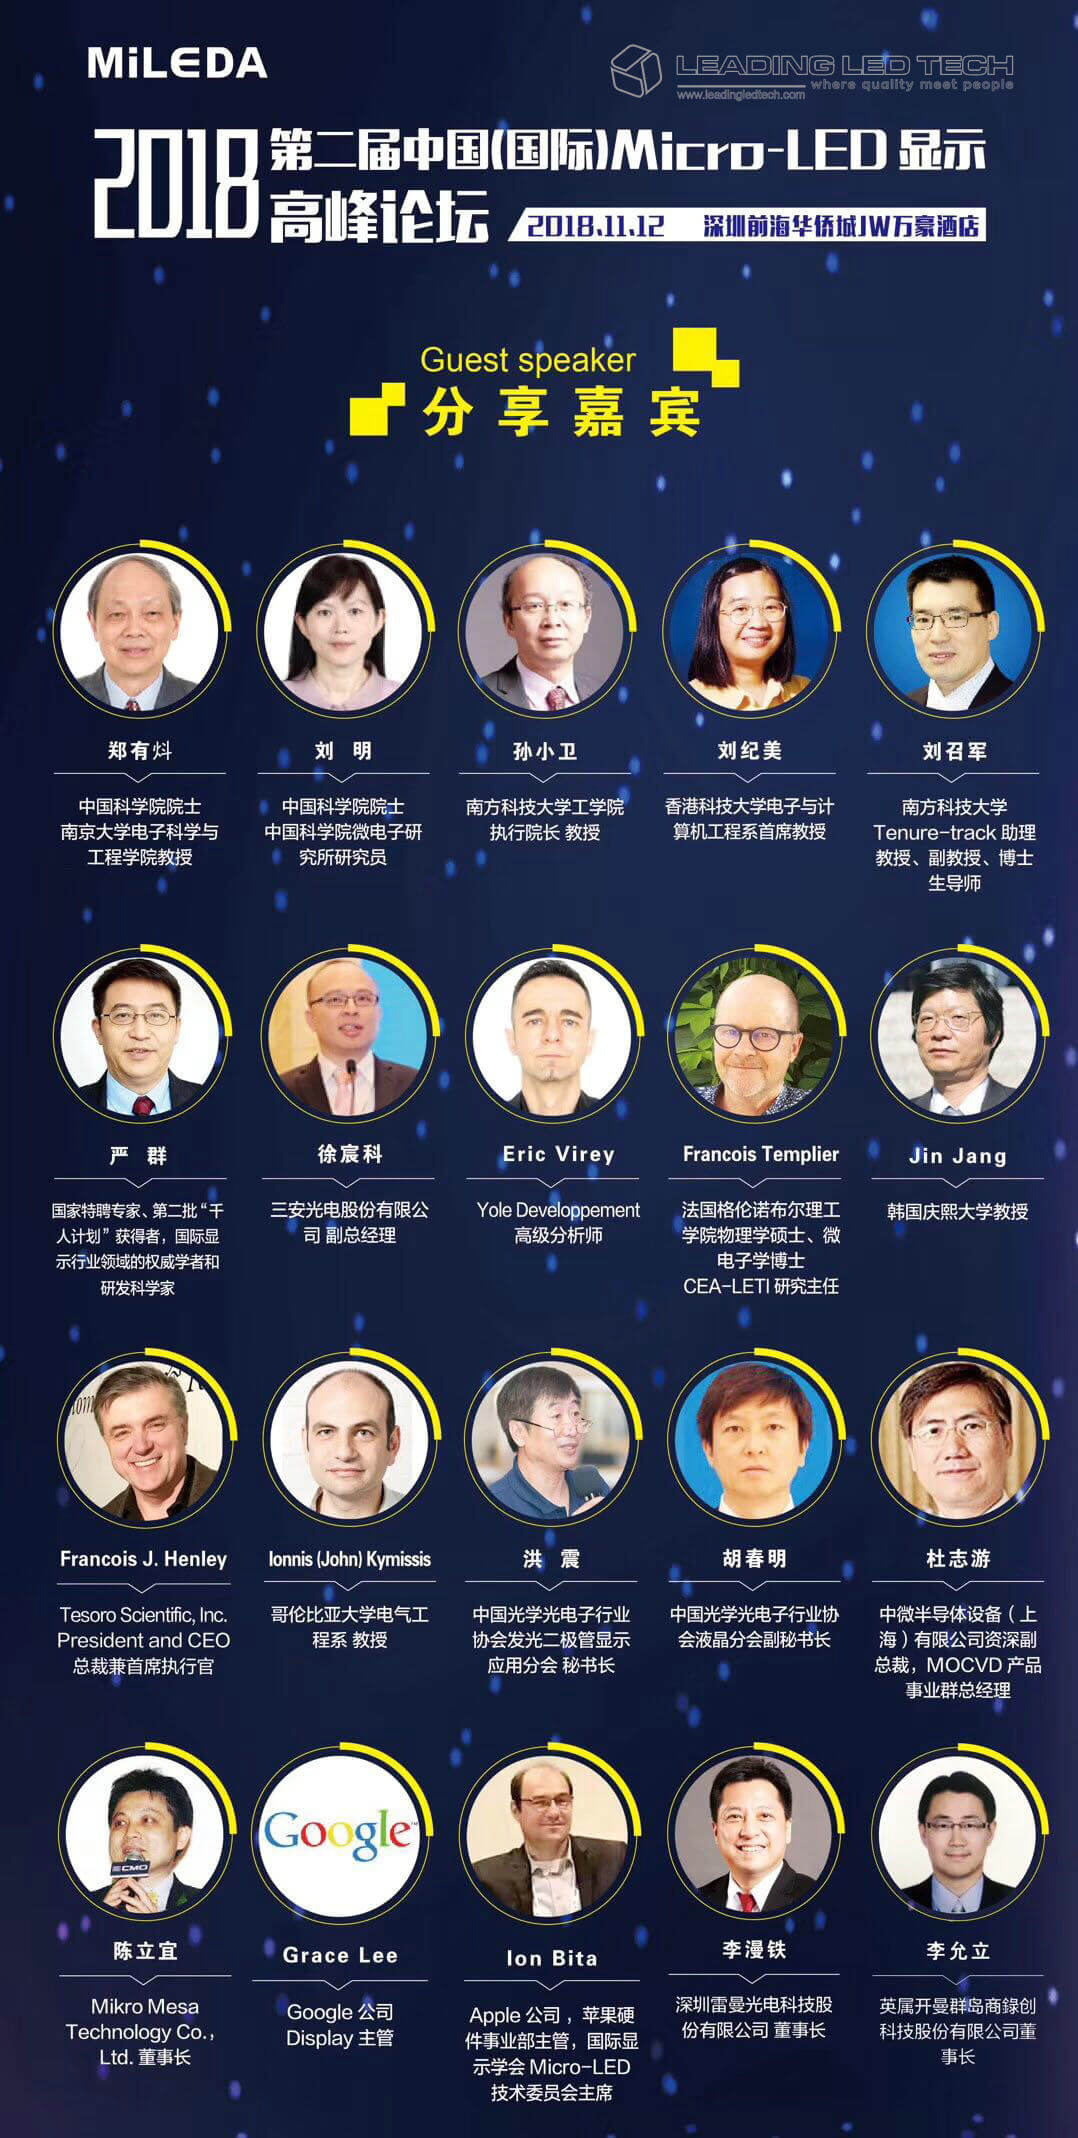 The 2nd China (International) Micro-LED Display Summit guest speaker